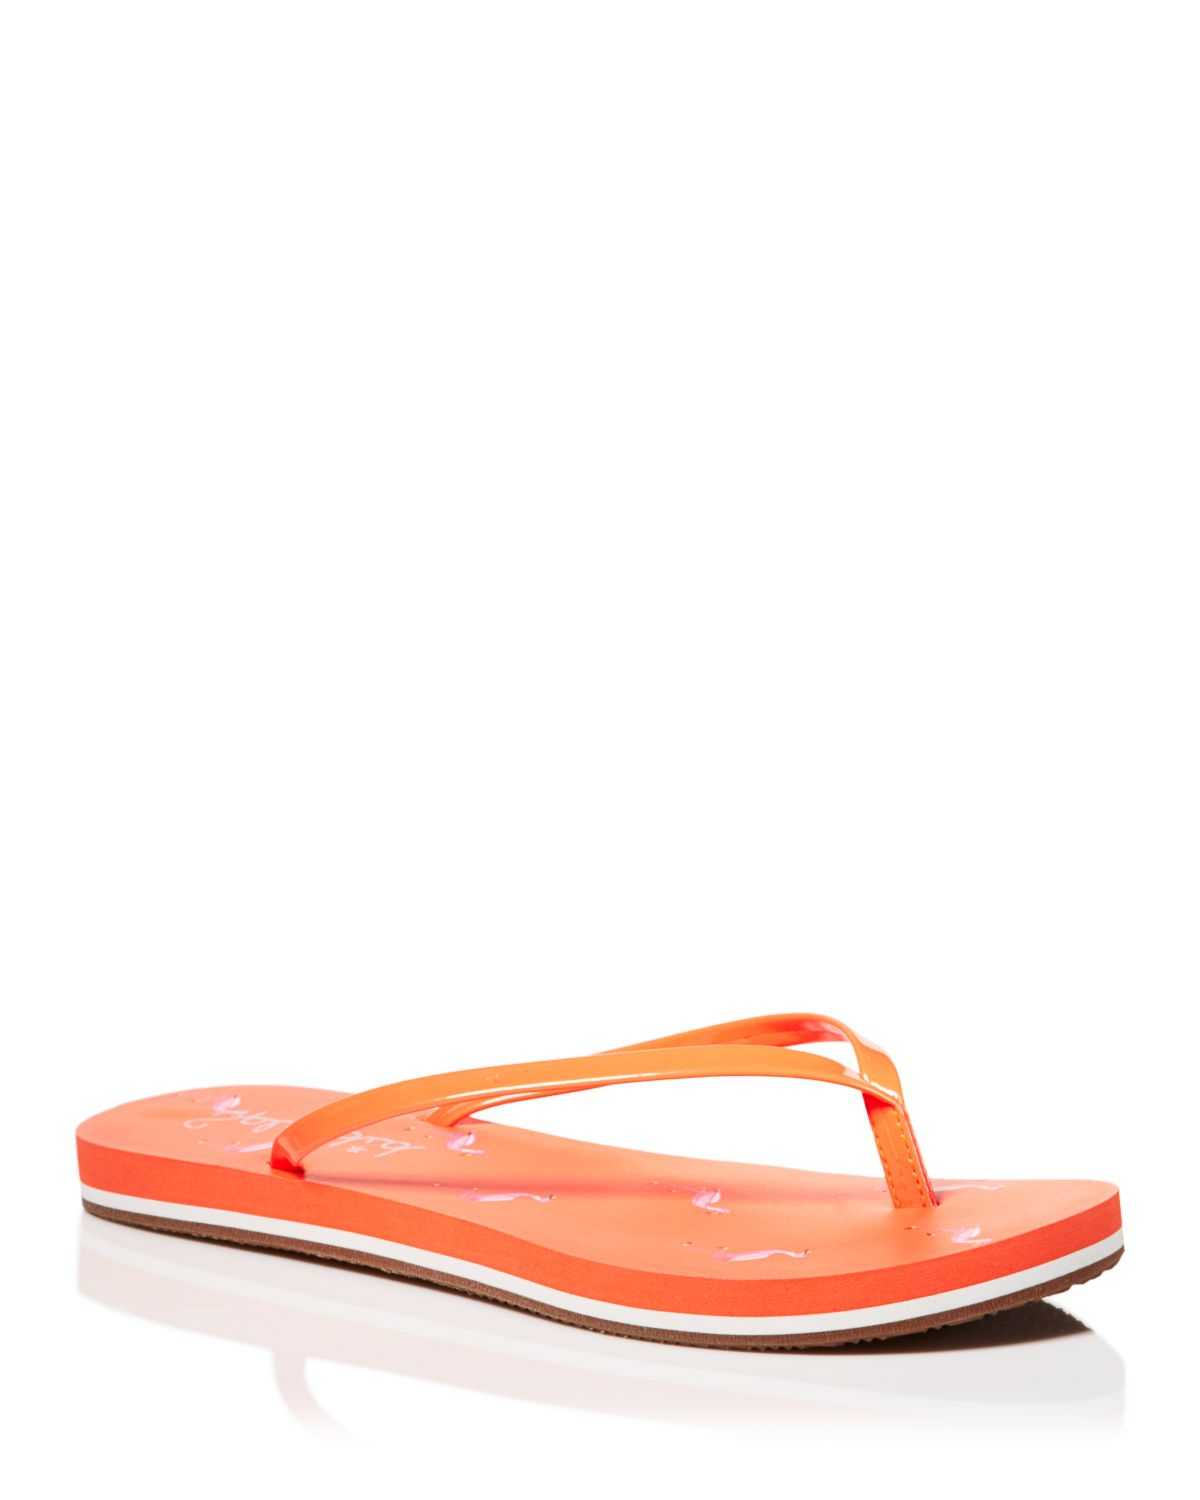 8e3548c6f72 Lyst - Splendid Flip Flop Sandals - Firefly Flamingo in Orange